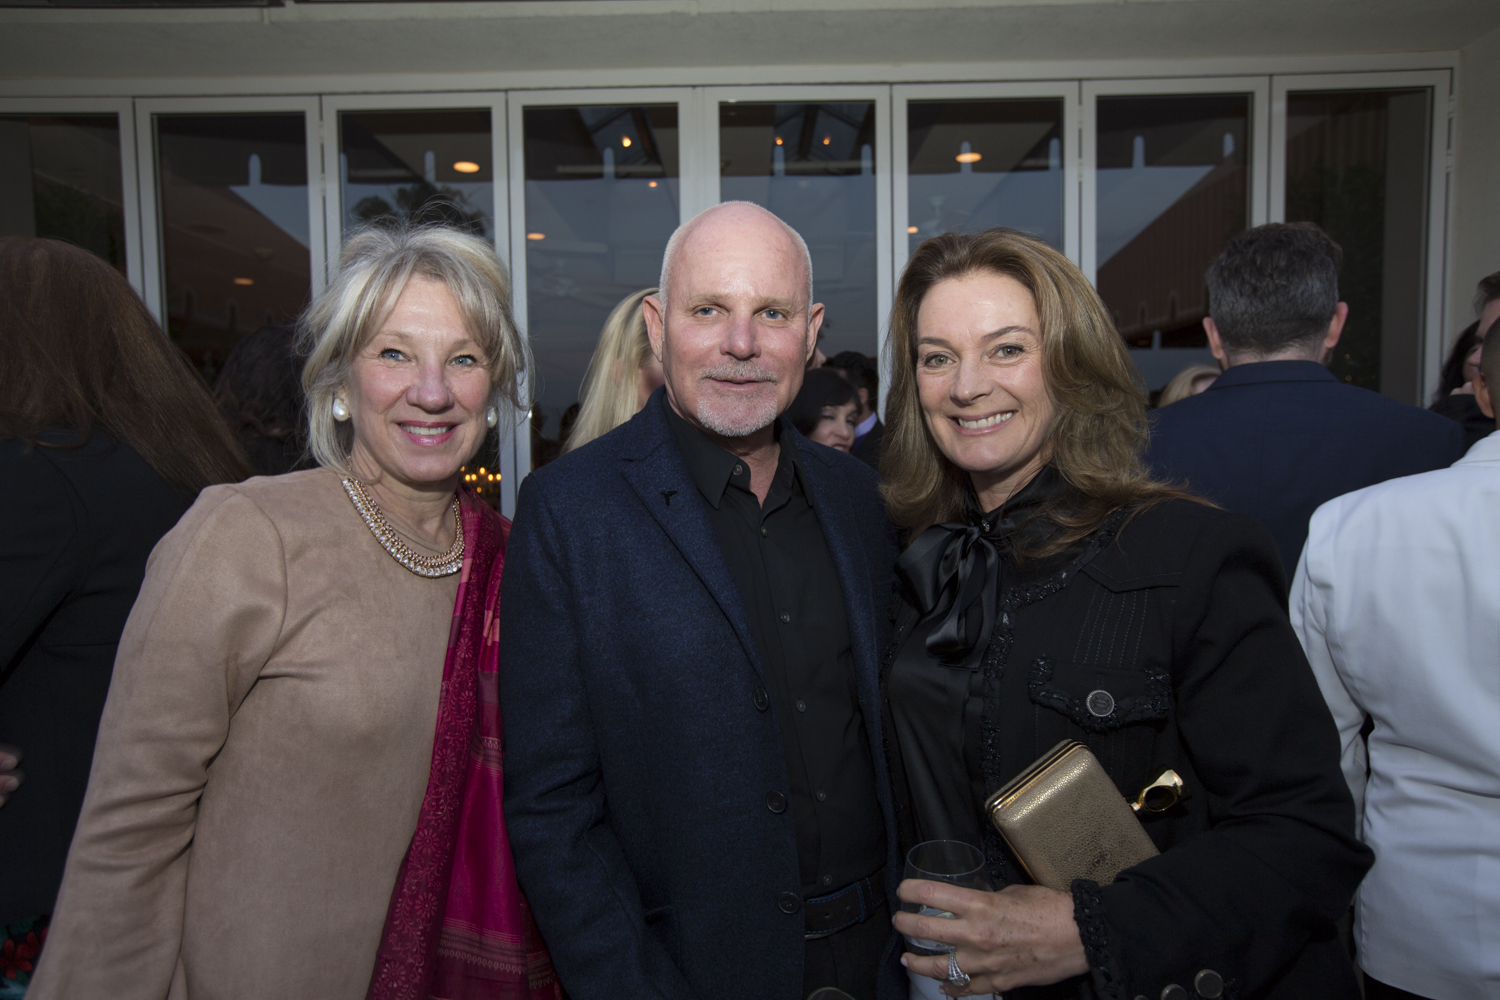 Carolyn Englefield, Richard Hallberg and Lisa Hearst Hagerman